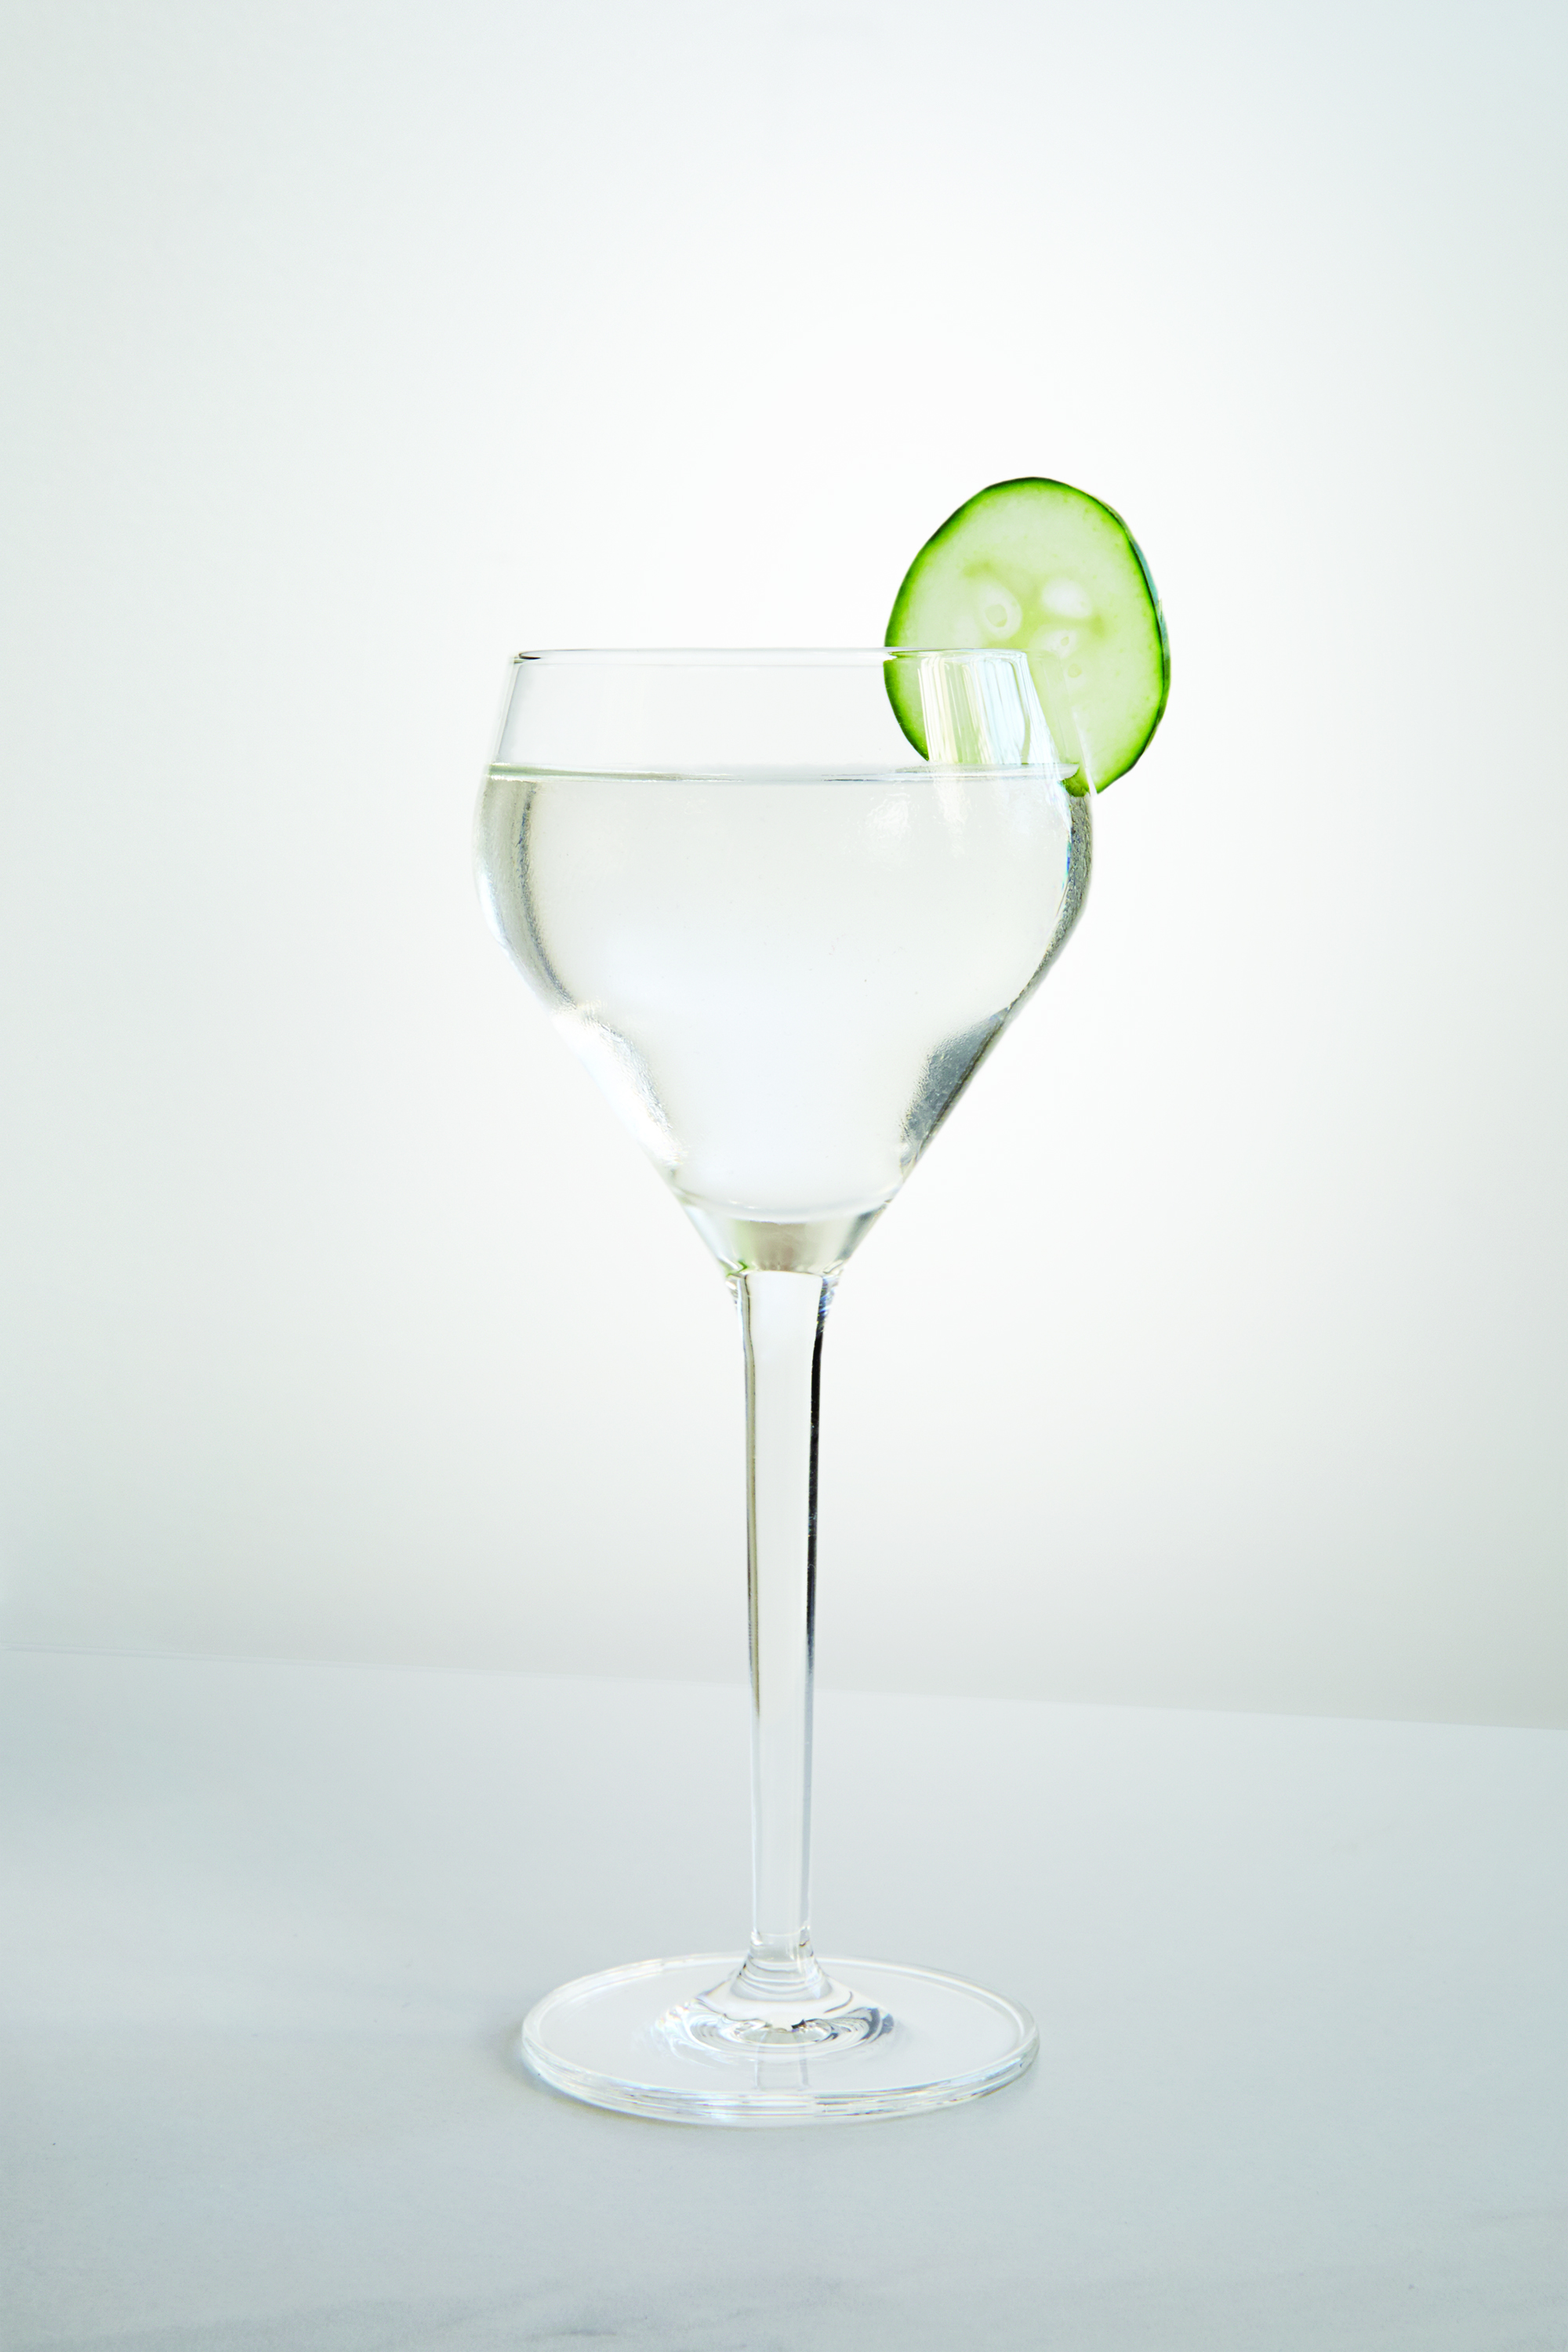 FIFTH DEGREE   1 1/2 oz Gin  1 oz Chareau  2 Dashes Absinthe  Stir over ice, strain, and pour. Garnish with Cucumber slice.   By Matthew Fleeger (15 Romolo SF)